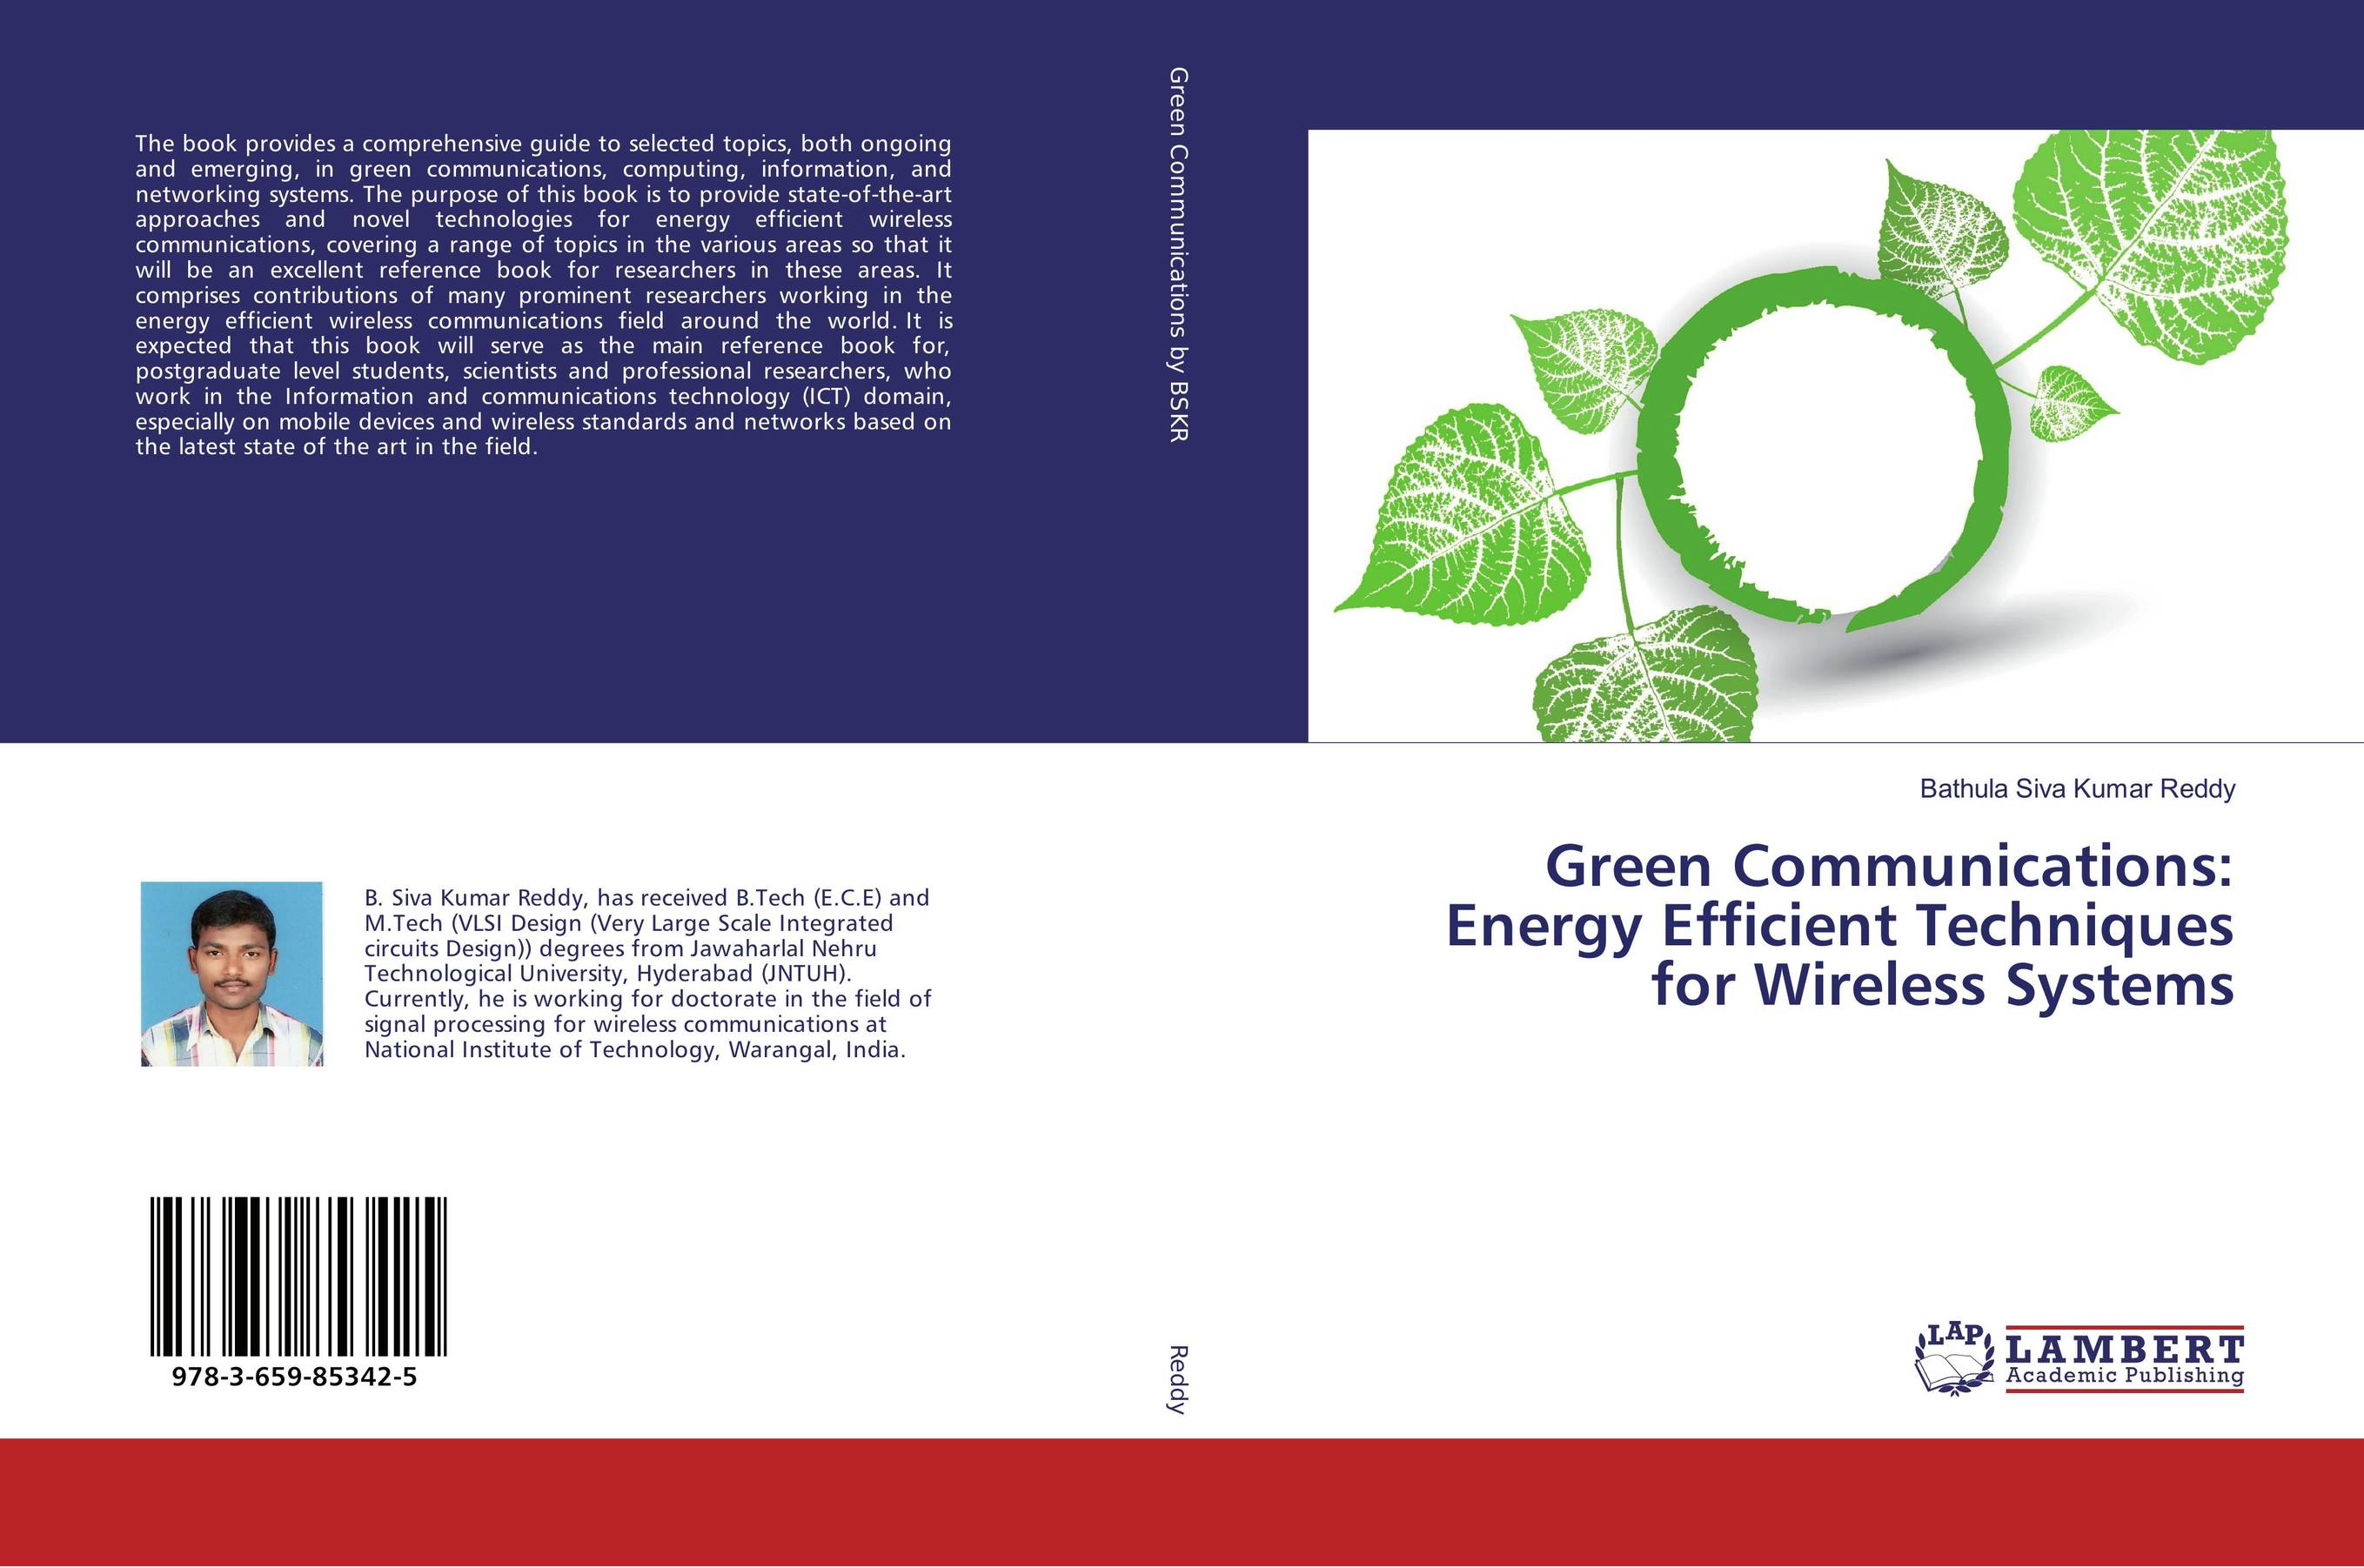 Green Communications: Energy Efficient Techniques for Wireless Systems